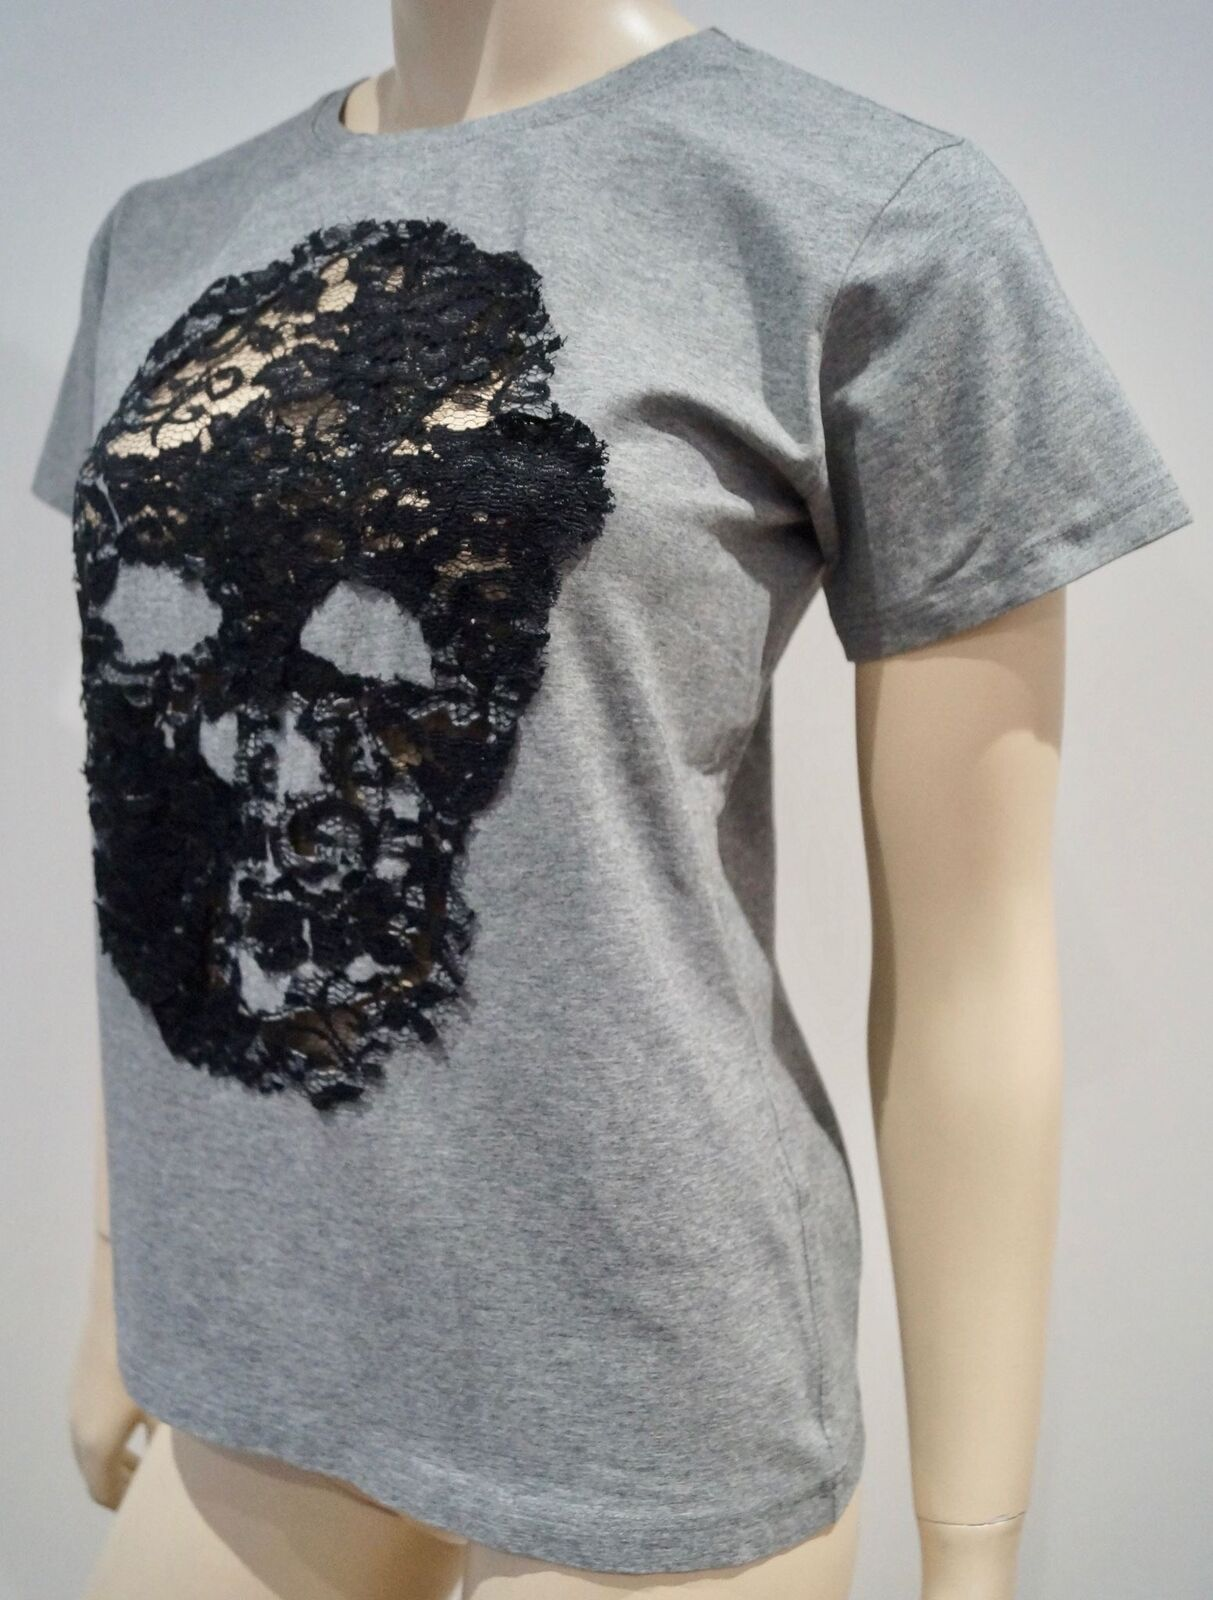 BUI DE BARBARA BUI grau Cotton schwarz Lace Skull Short Sleeve T-Shirt Tee Top S